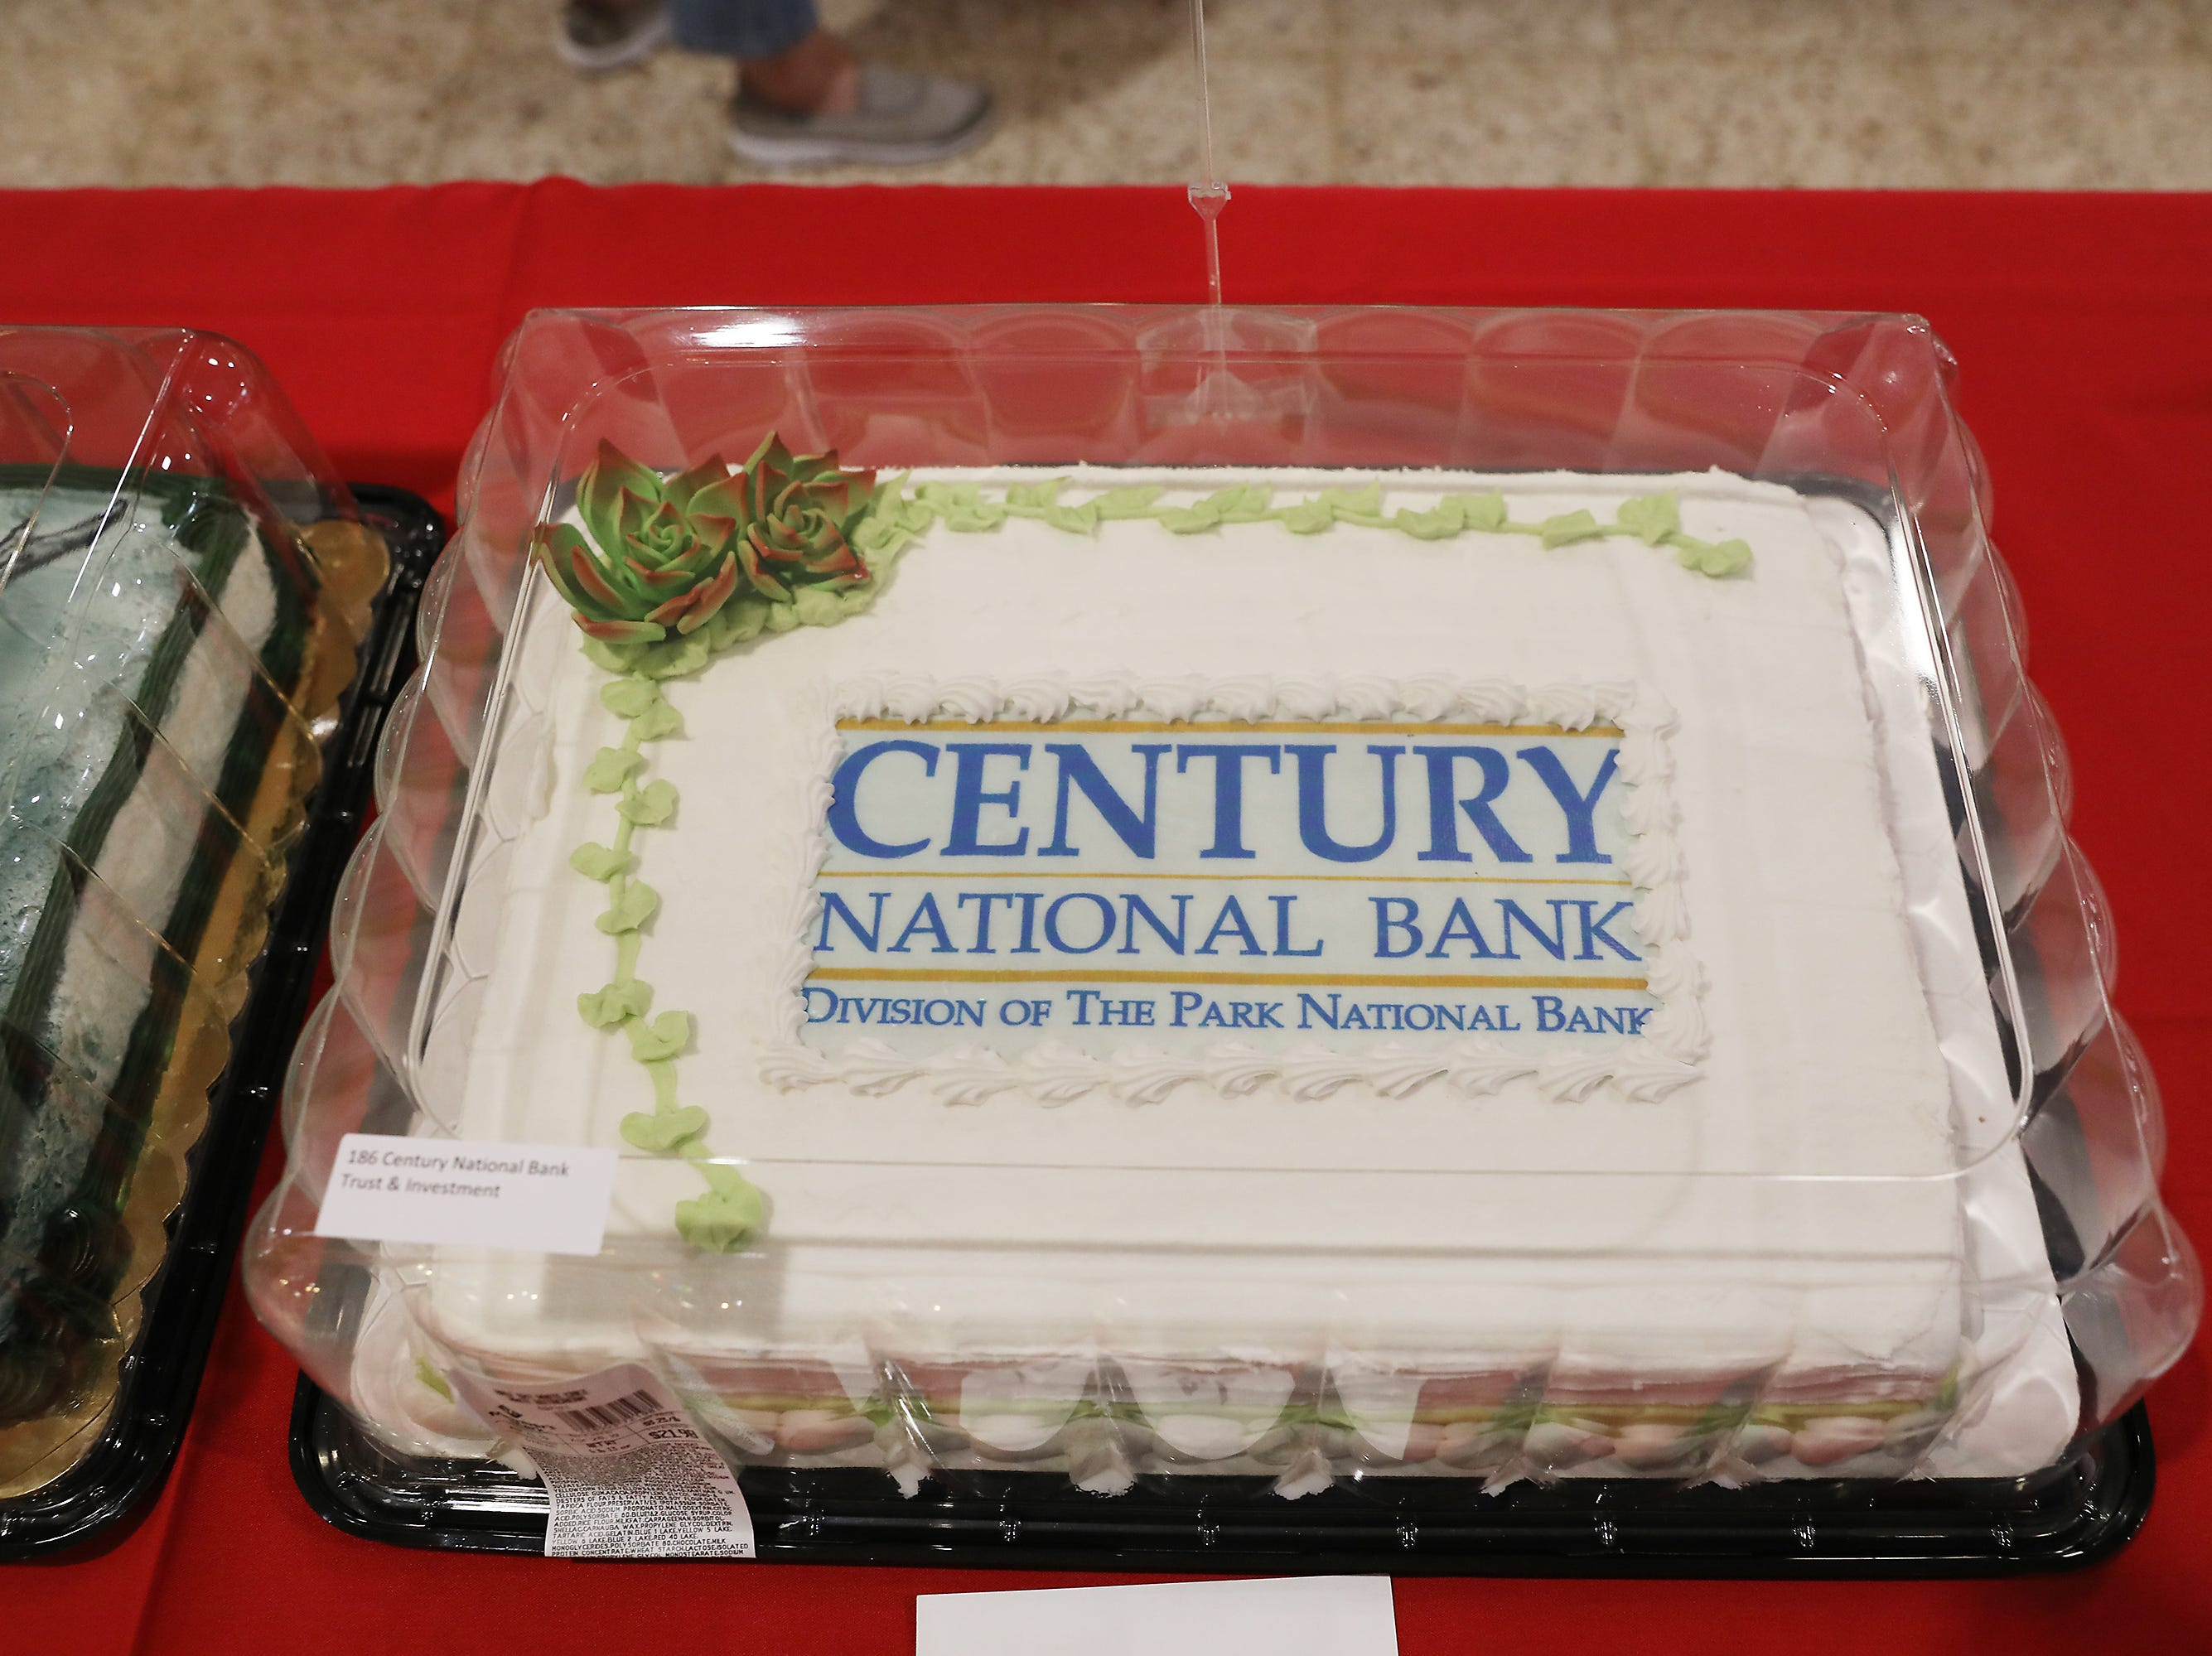 5:00 P.M. Thursday cake 186 Century National Bank Trust & Investment - 2  center orchestra seats to Les Miserables on November 21; $200